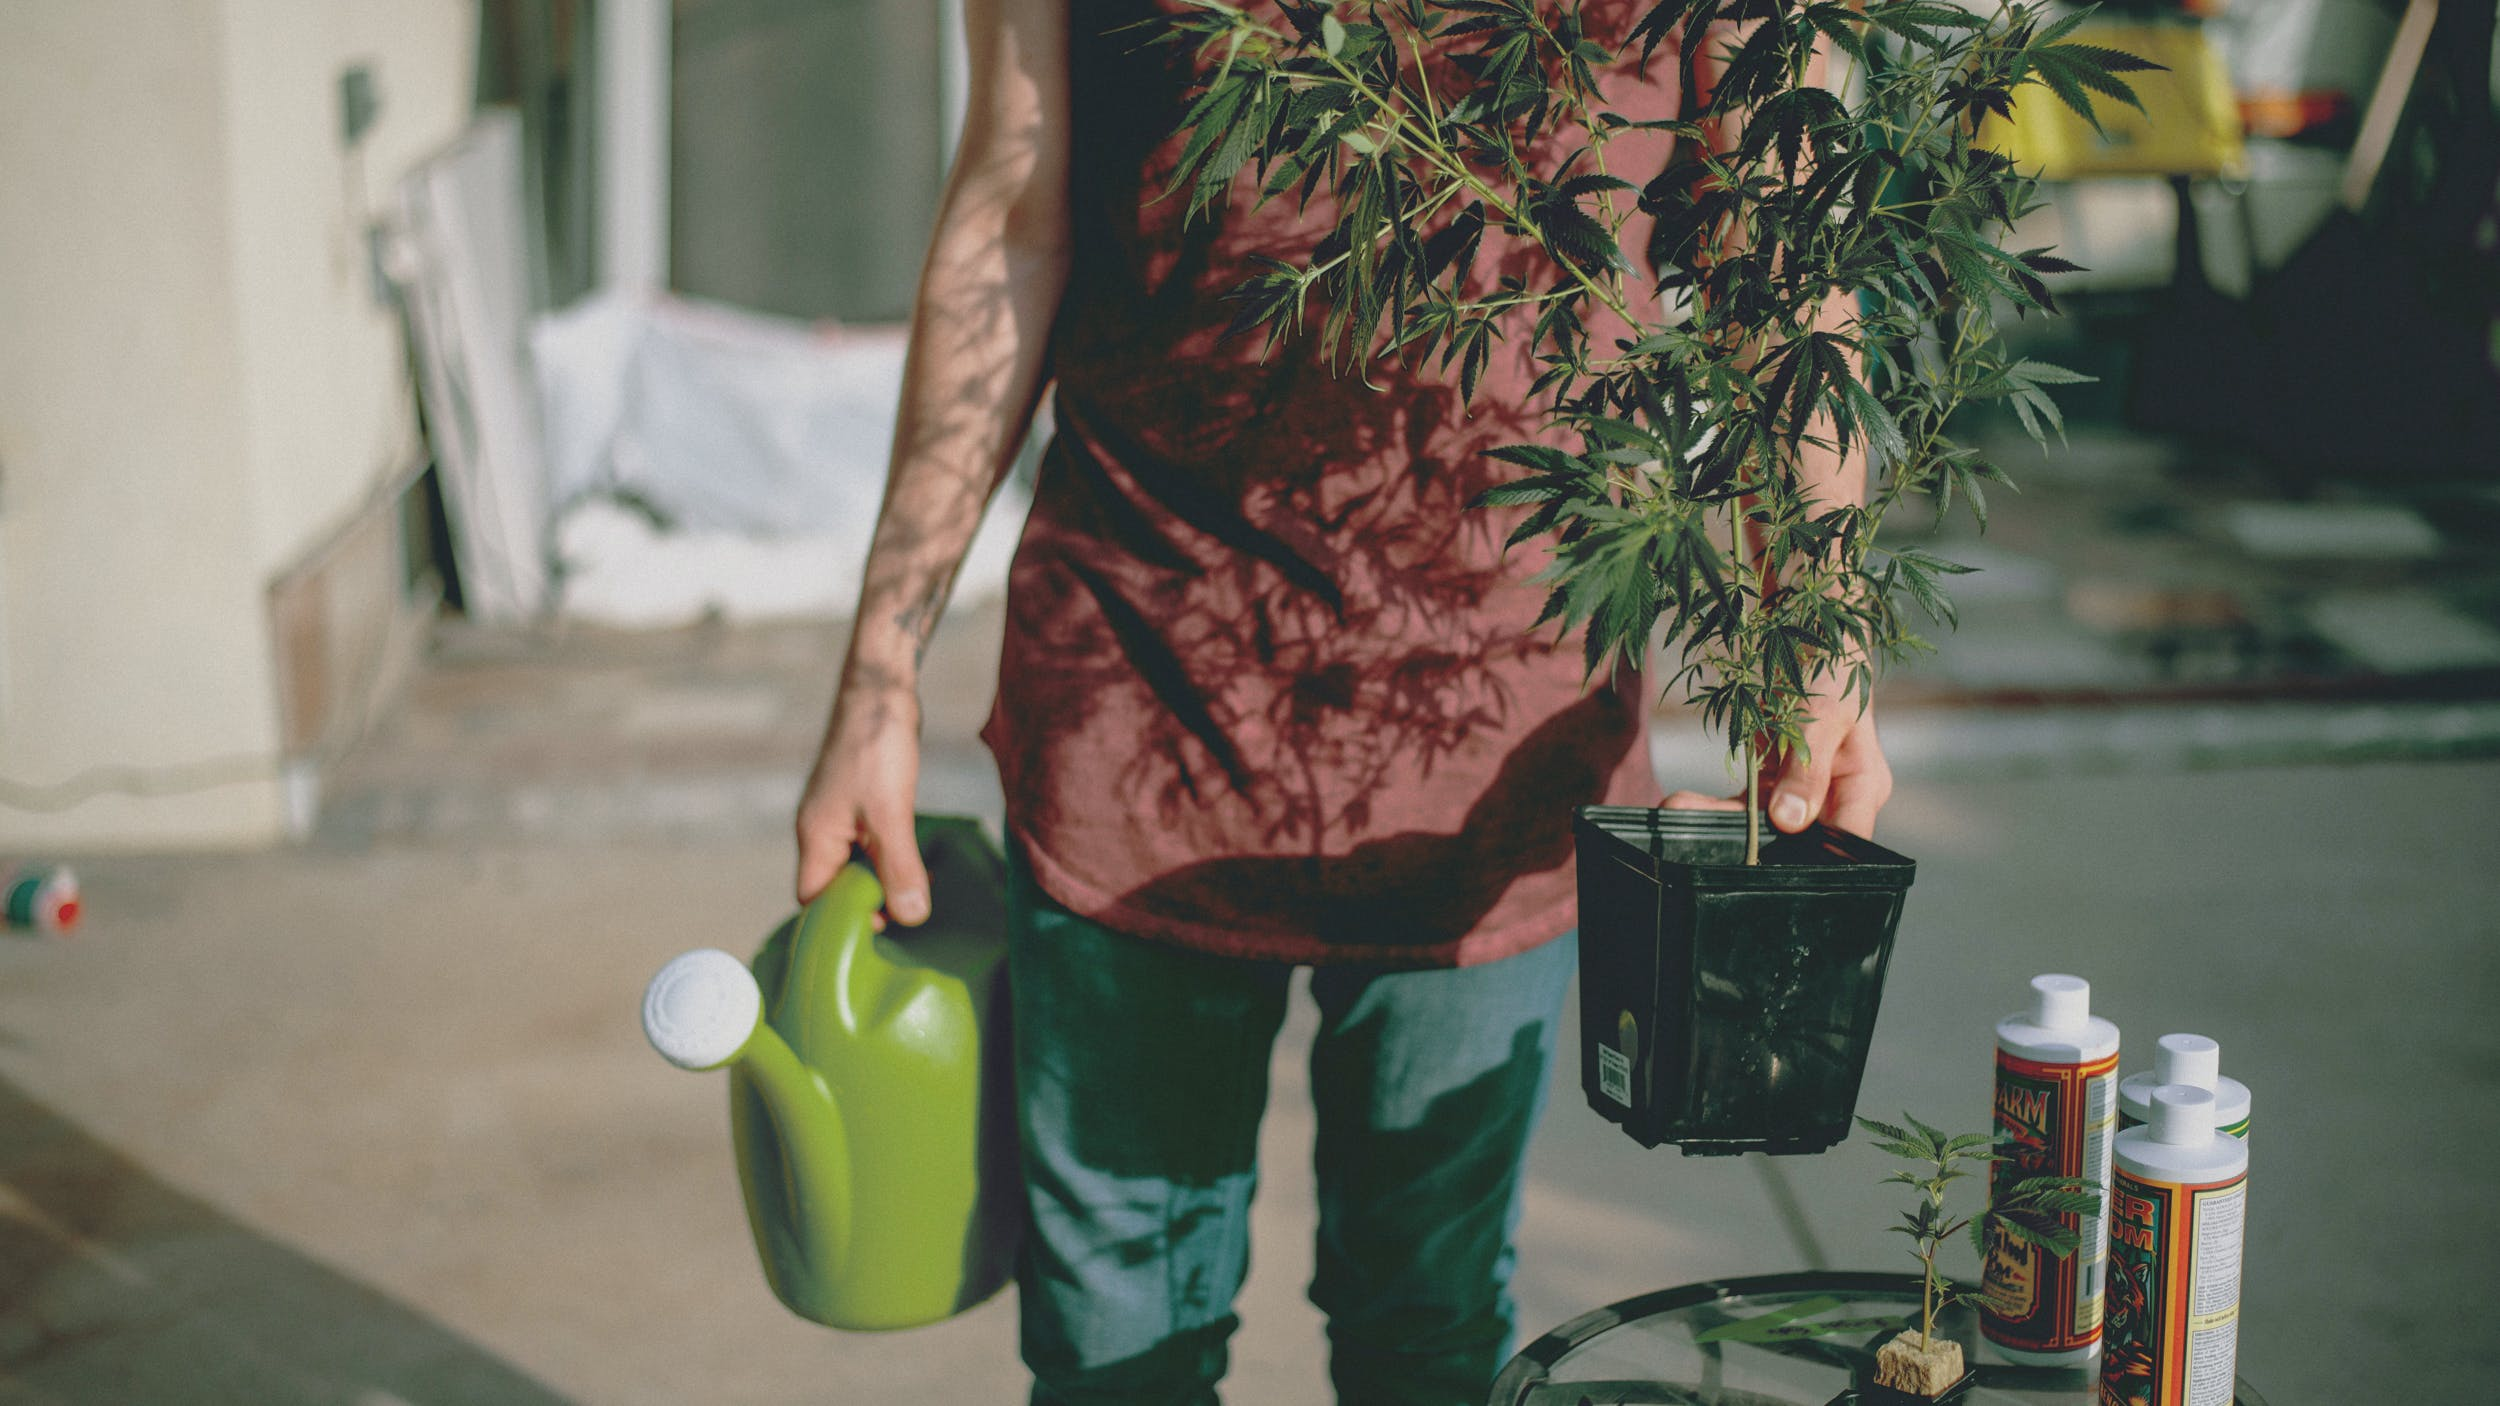 A man carries a watering can and a plant treated with the best weed fertilizers